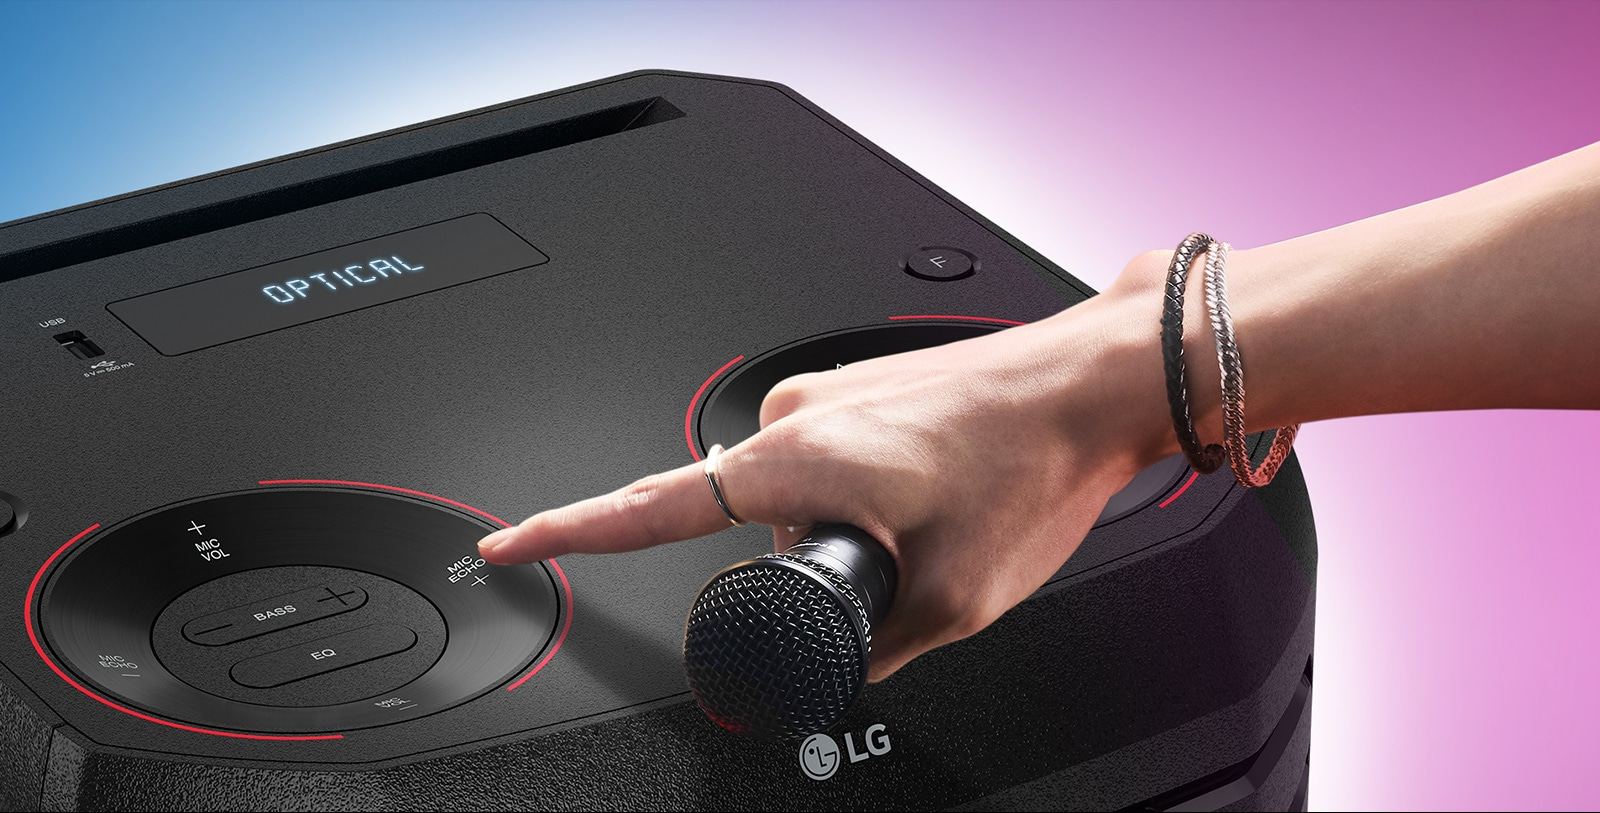 A hand holding a microphone tries to press the Mic echo button on the top of LG XBOOM.